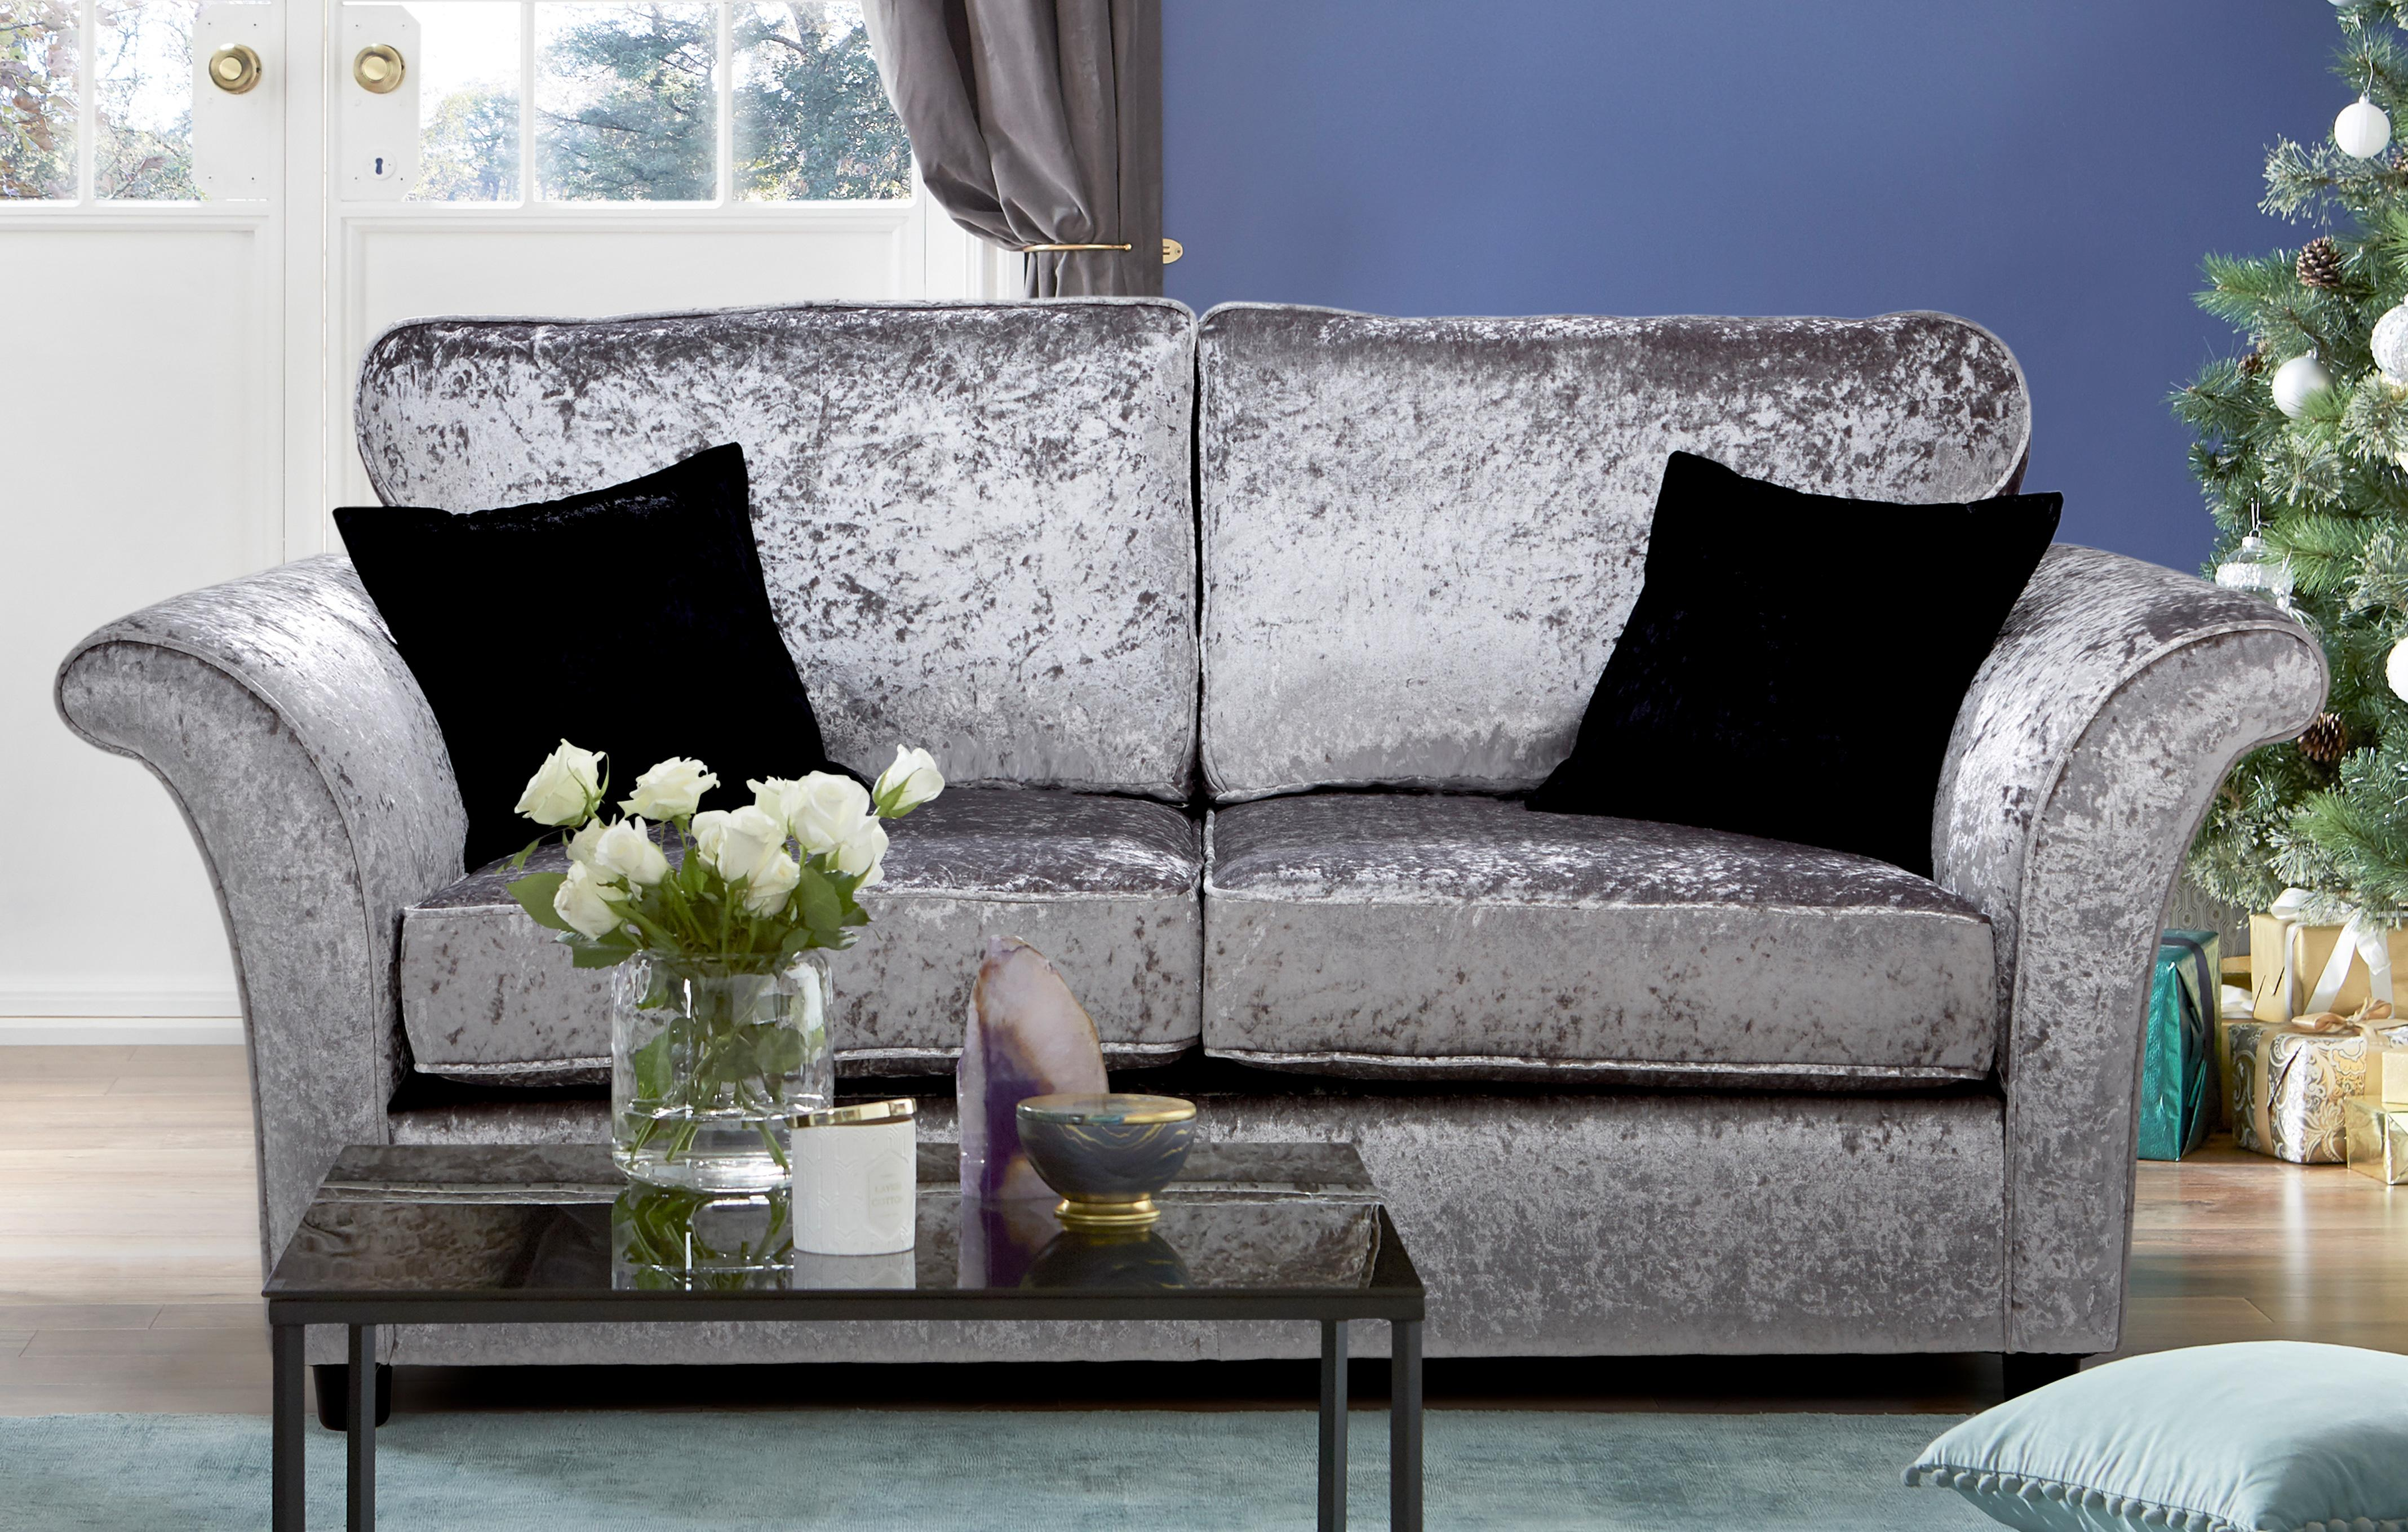 Sofa bed images